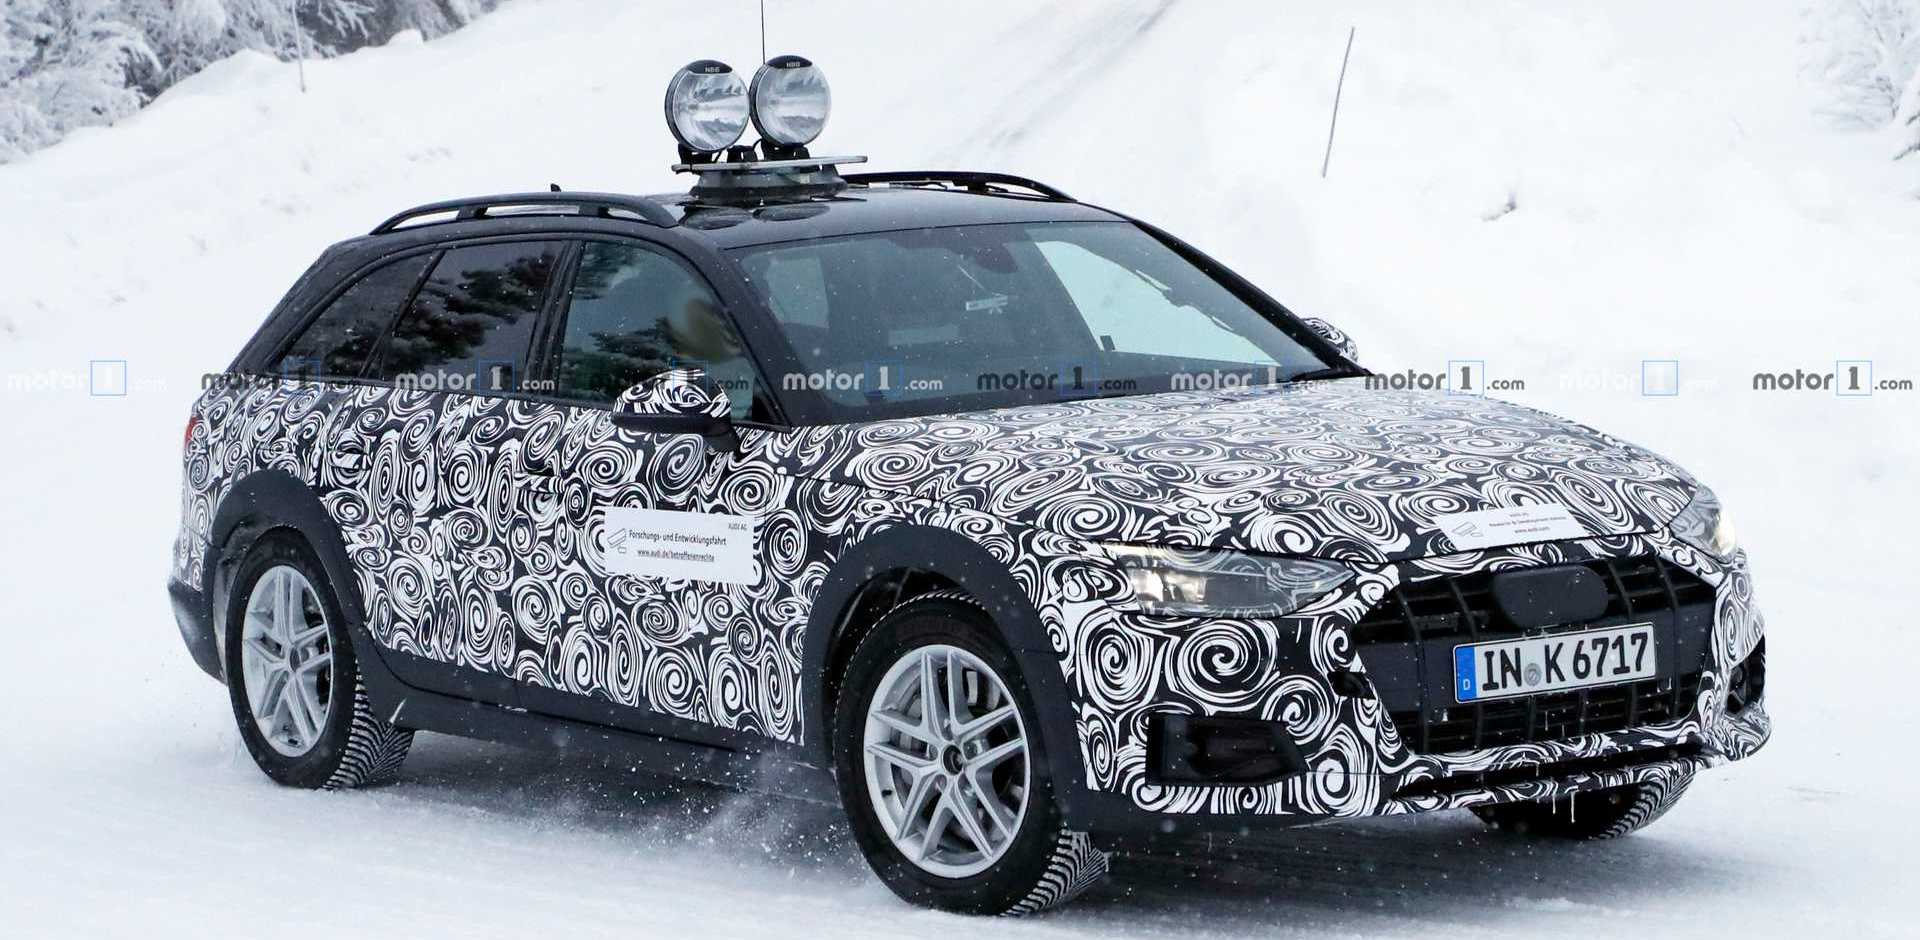 New Audi A4 Allroad Spied For The First Time